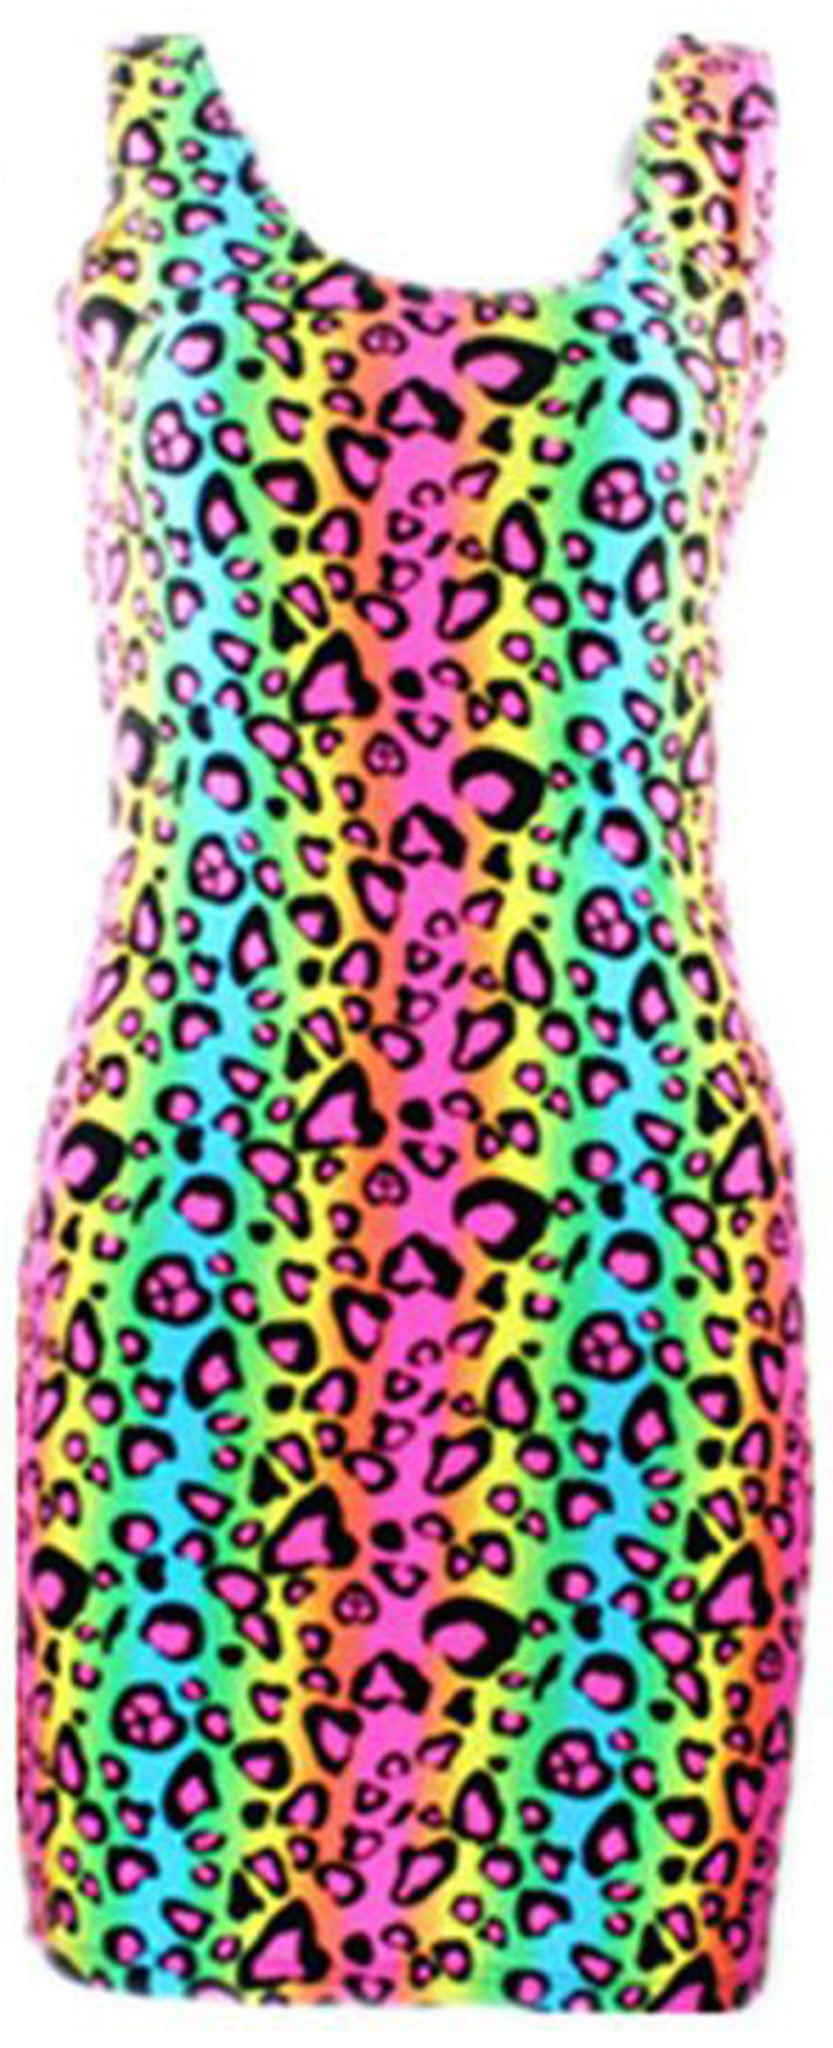 Neon Multi Colored Cheetah Animal Print Tube Bodycon Party Dress Costume - Neon Nation